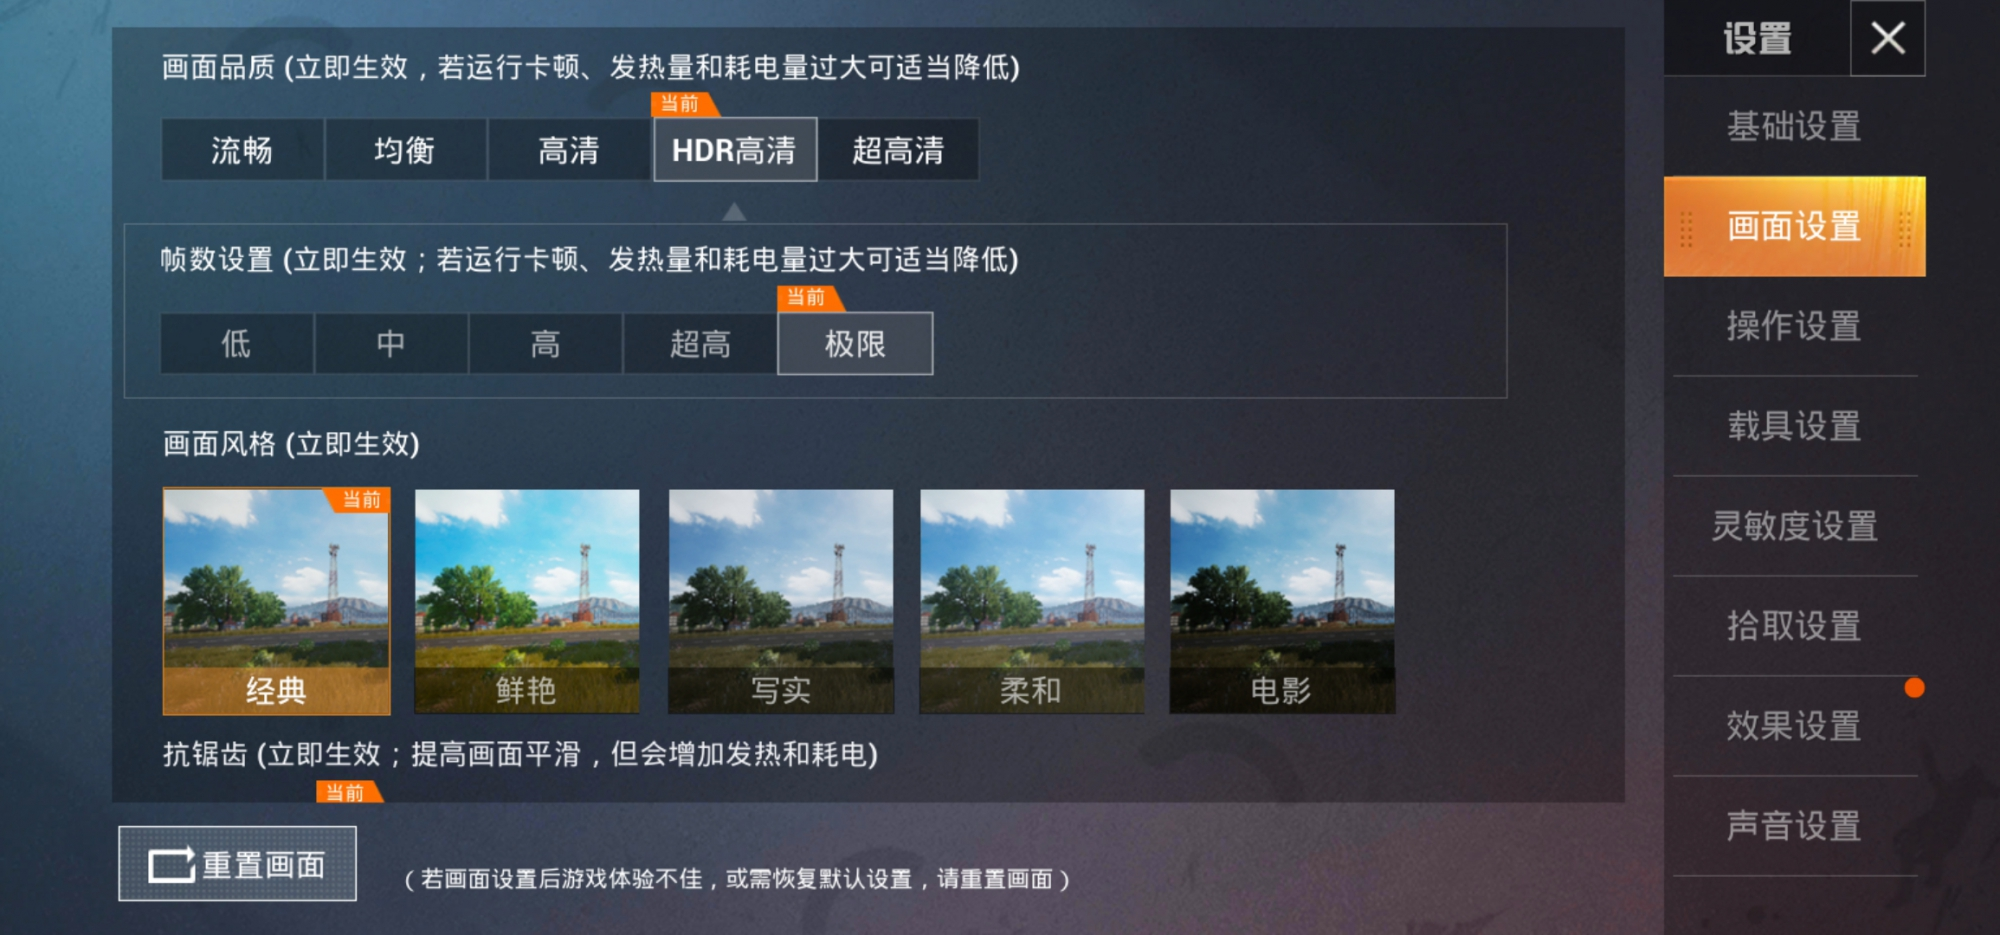 Screenshot_20190729_125532_com.tencent.tmgp.pubgm.jpg